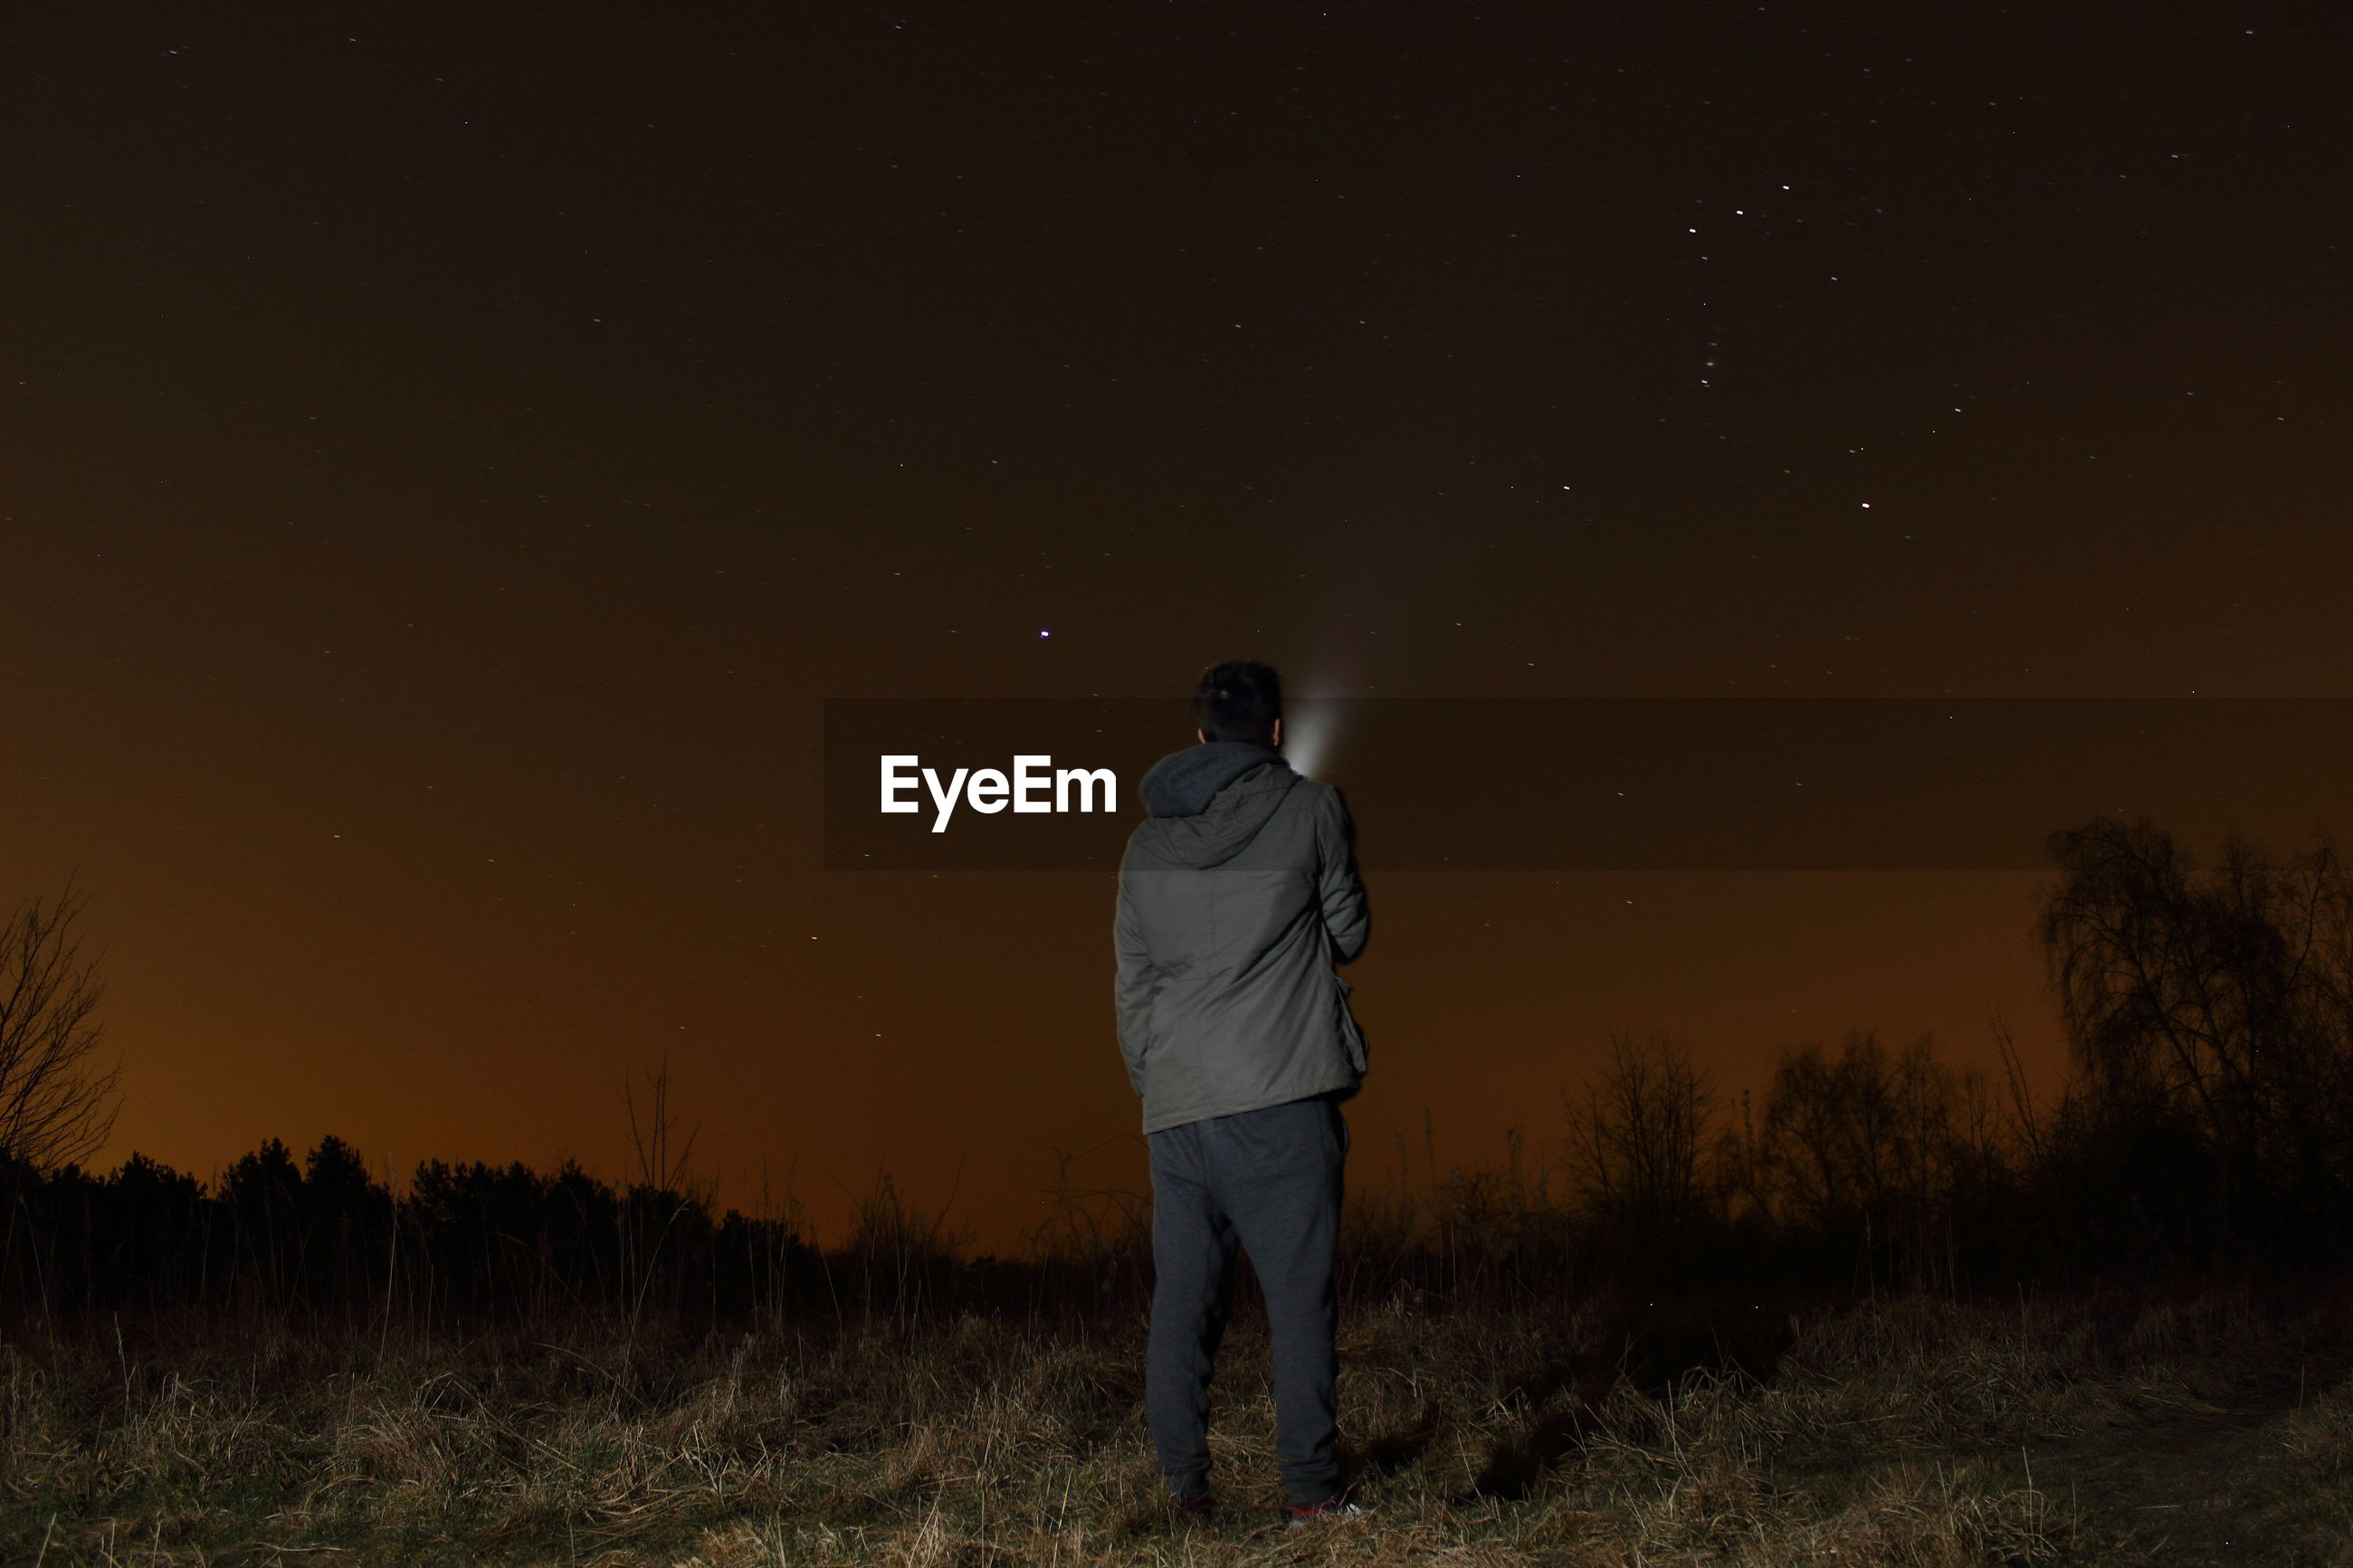 Rear view of man with flashlight standing on field against sky at night